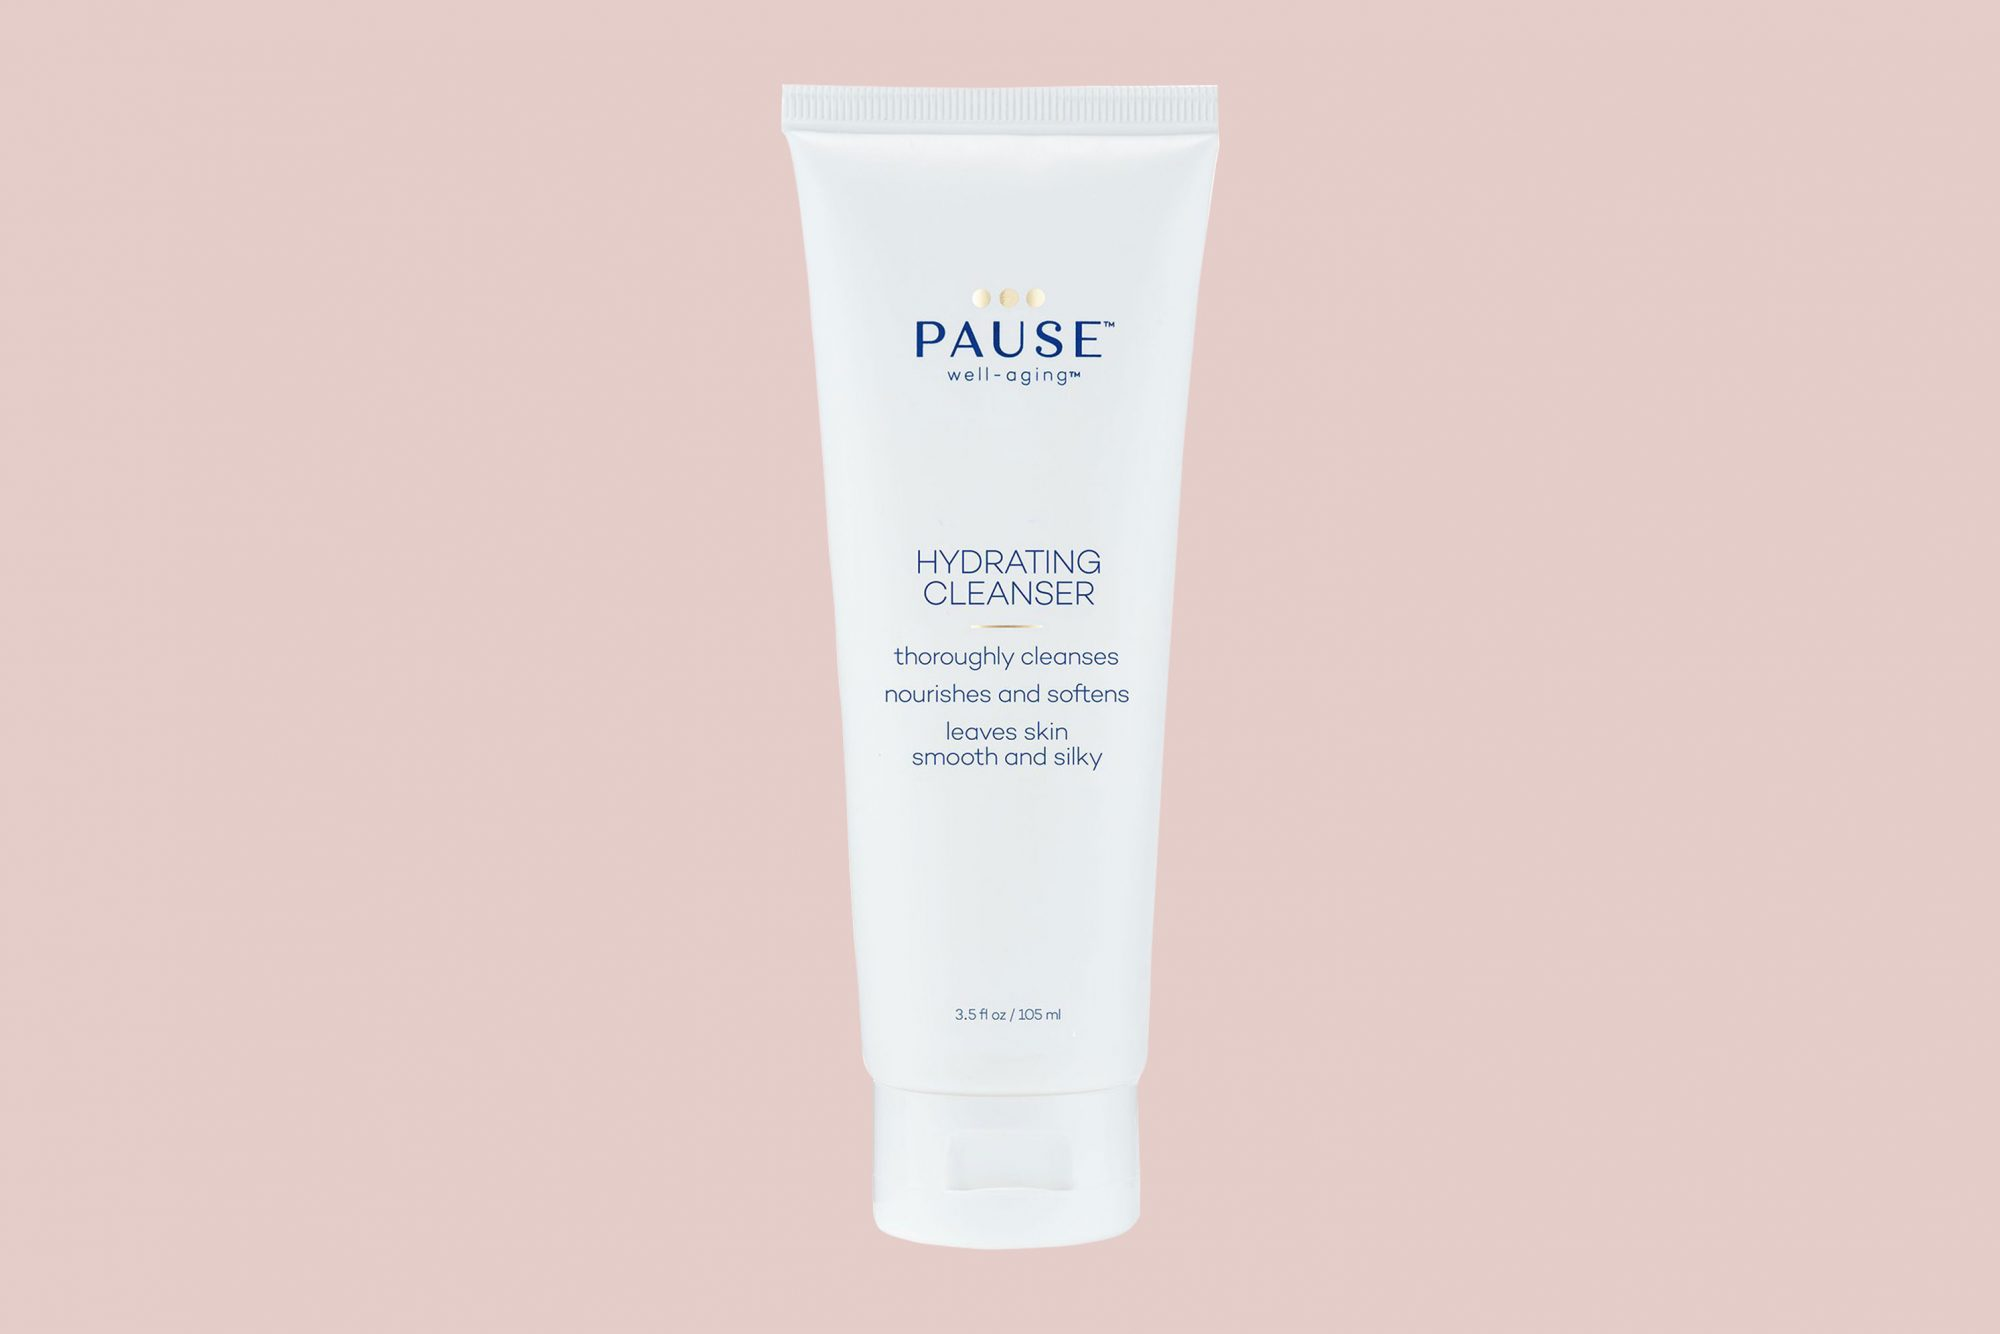 pause well aging hydrating cleanser